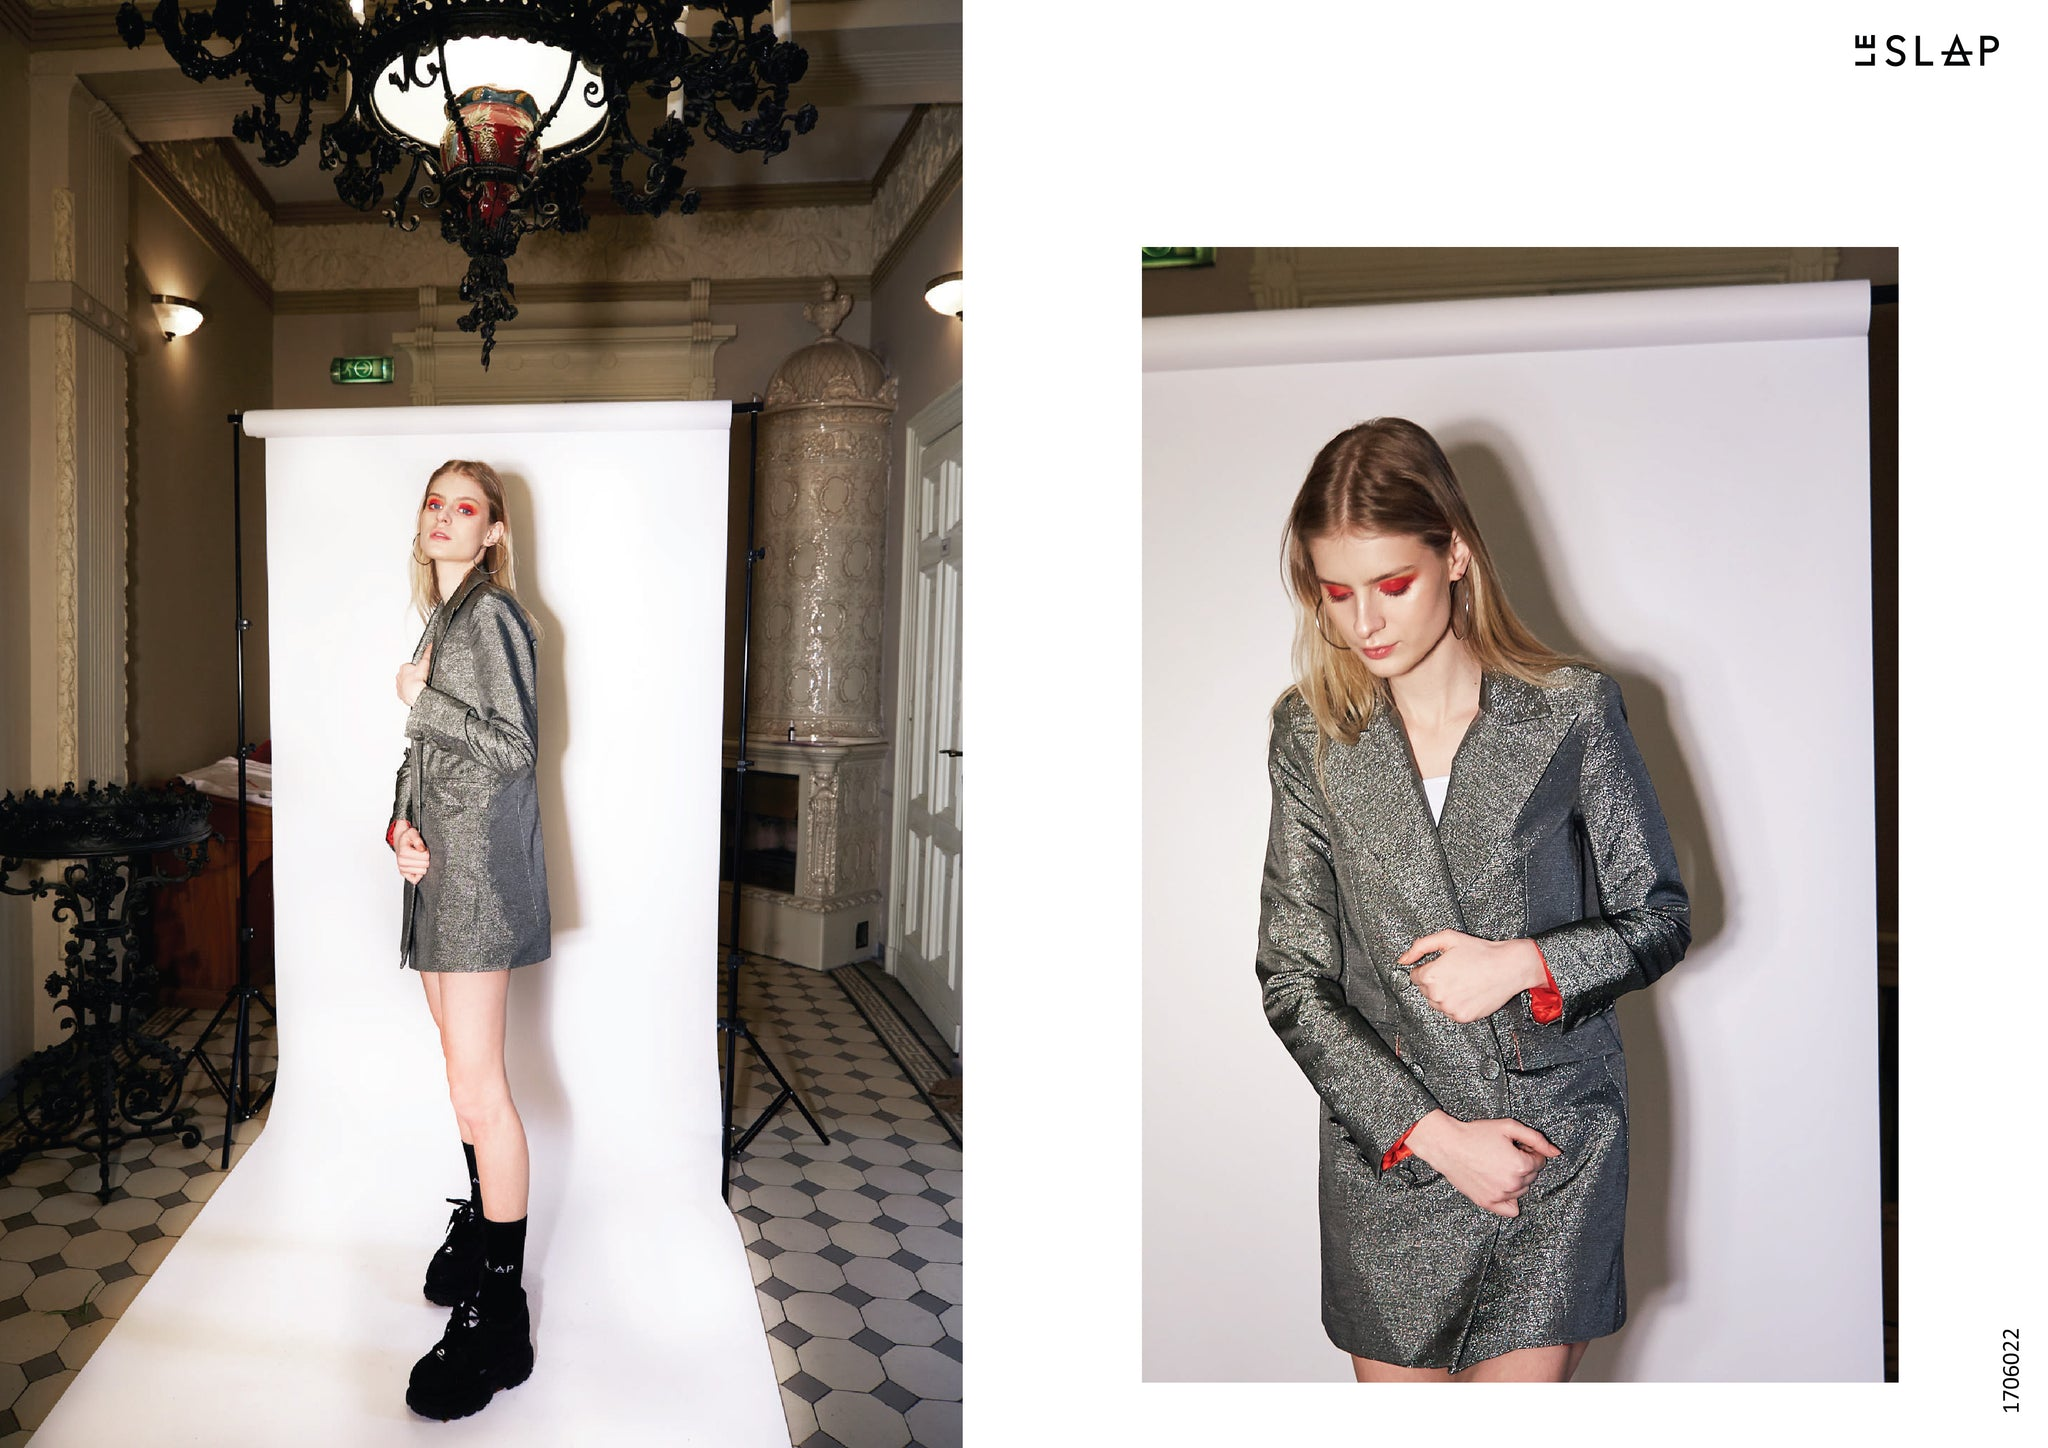 Le SLAP clothing brand lookbook statement fashion photoshoot Metallic dress / jacket